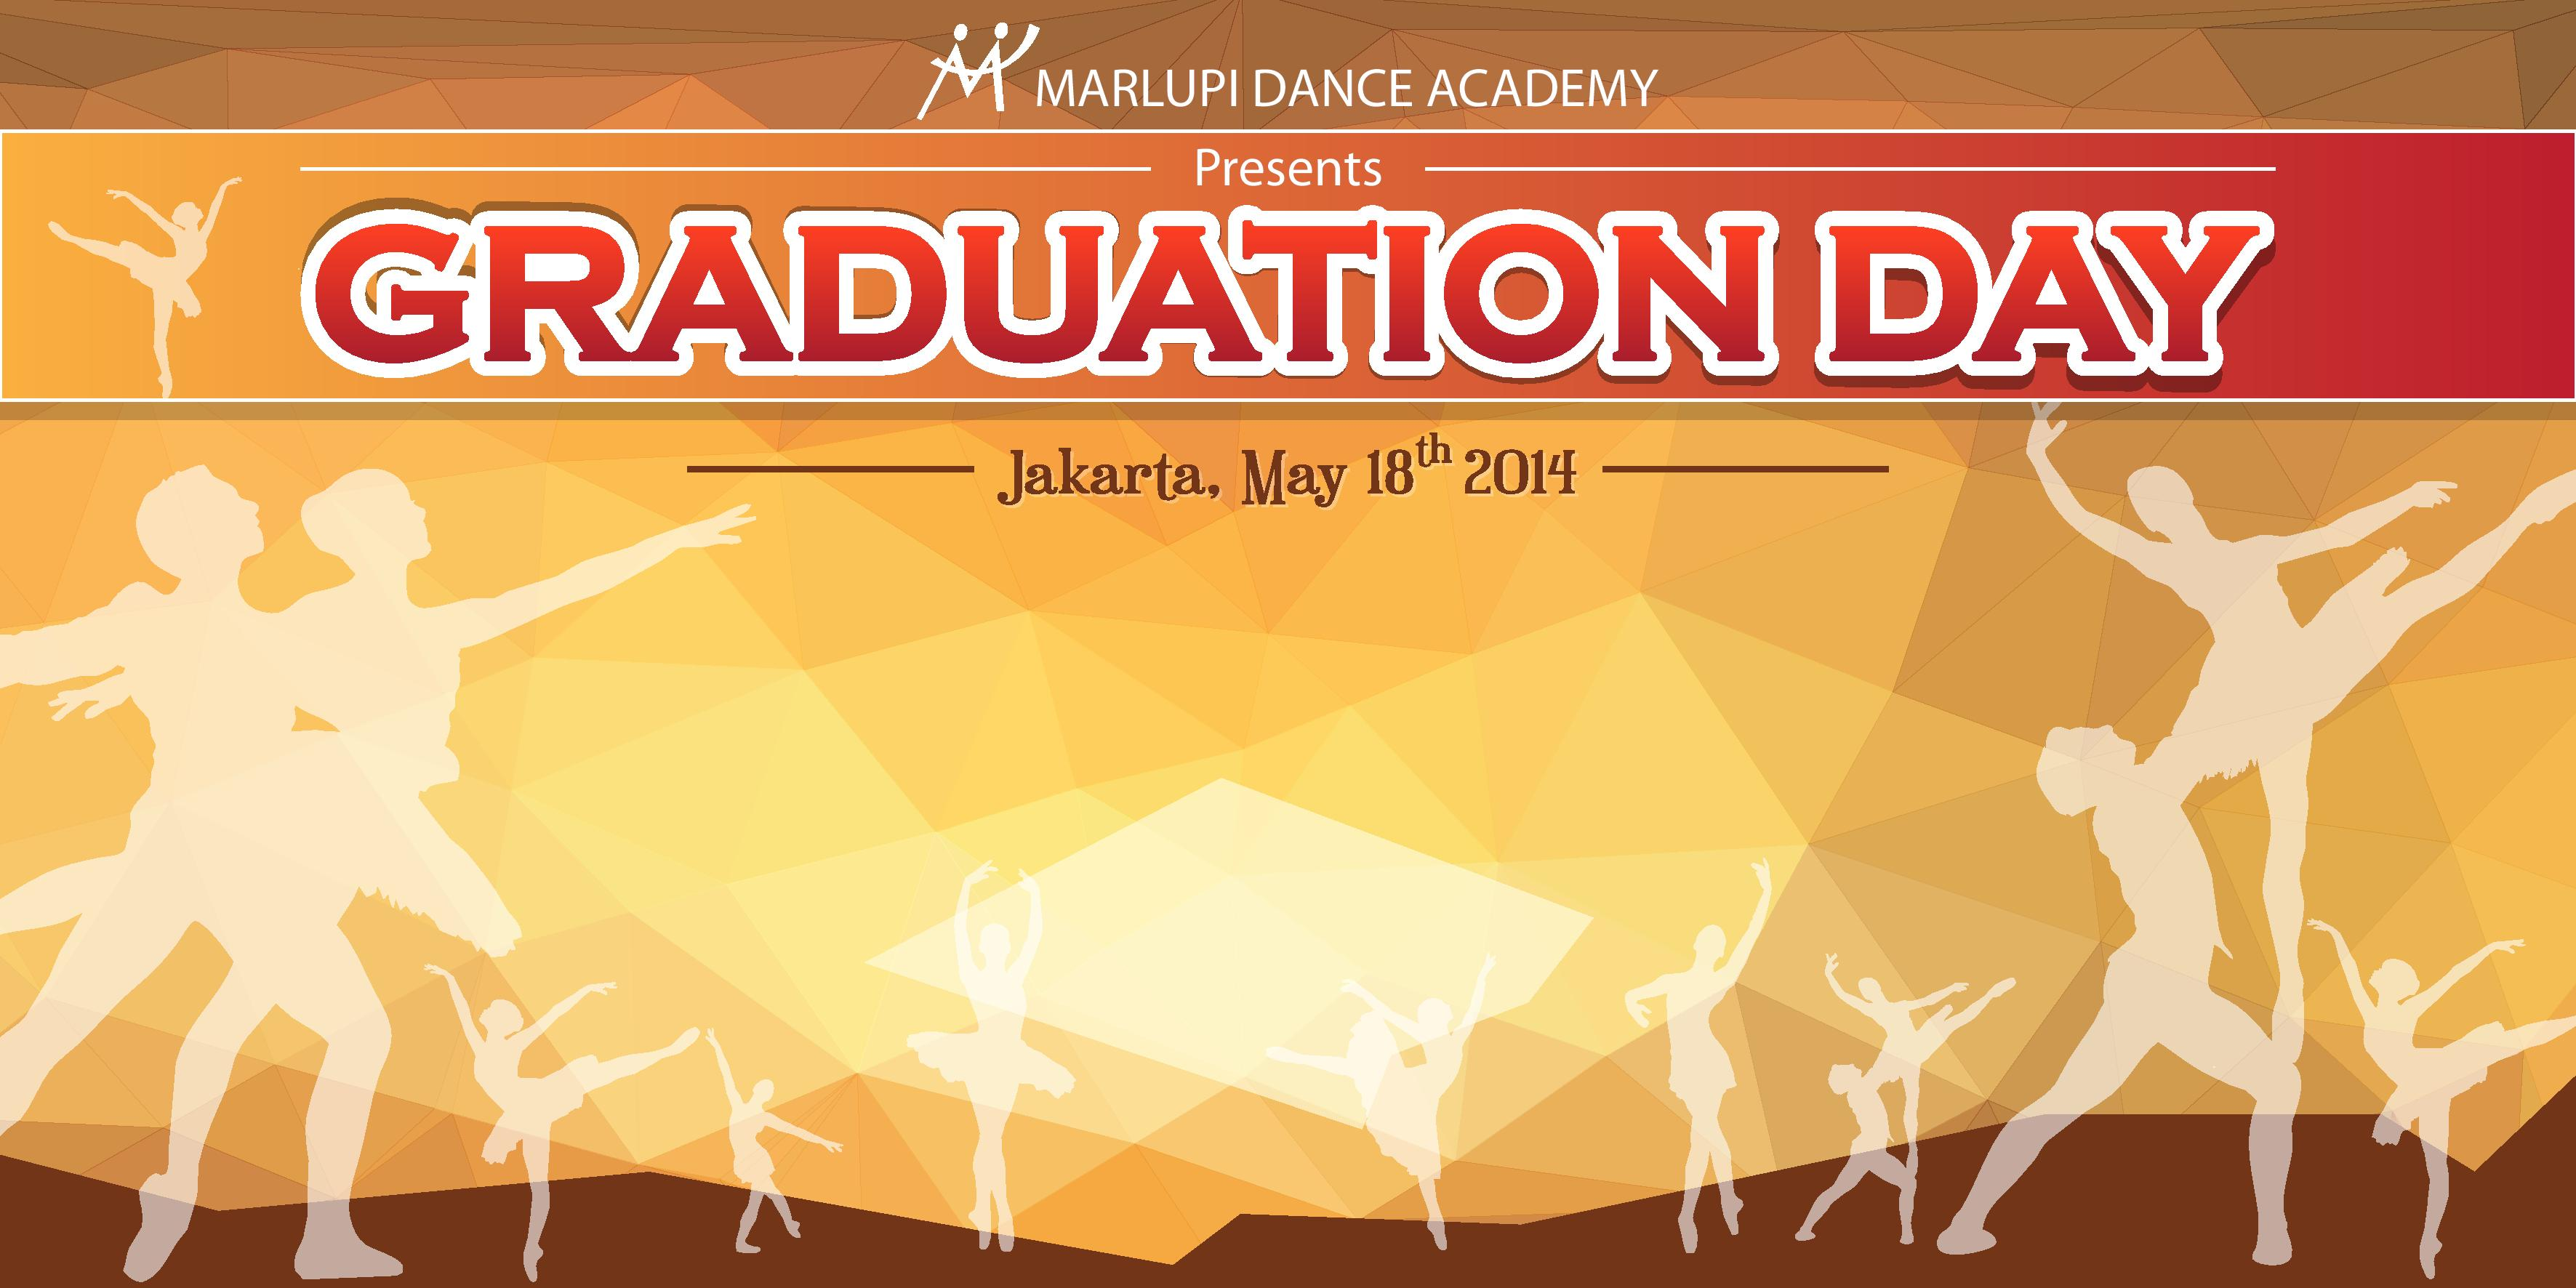 Marlupi Dance Academy - Graduation Day 2014